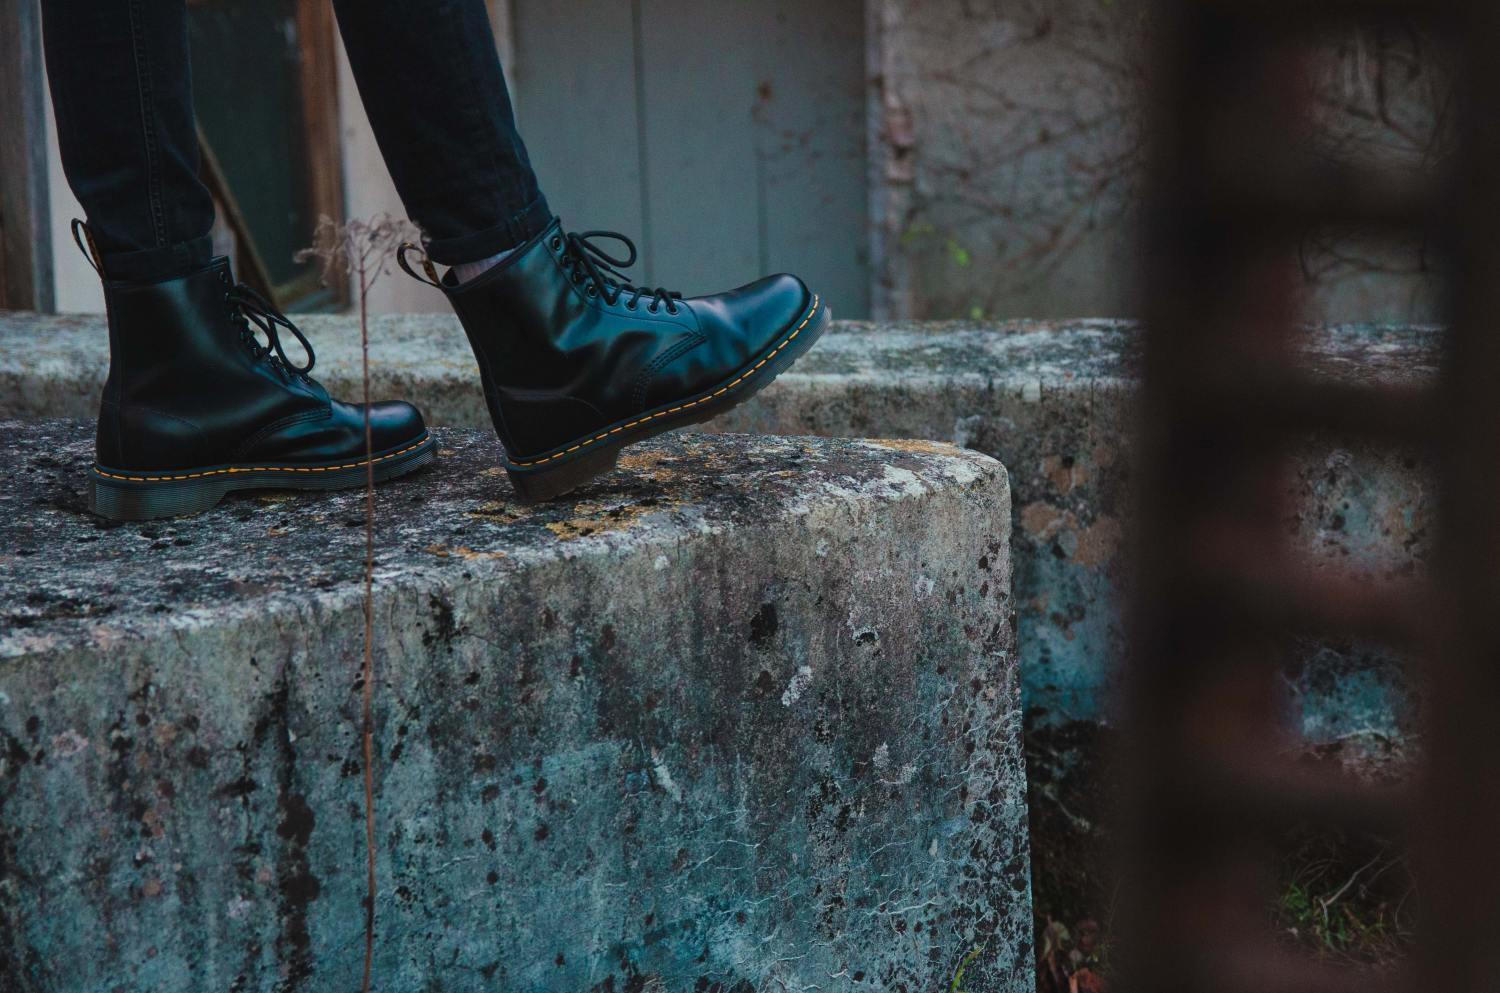 The History Of Shoes In 15+ Fascinating Facts